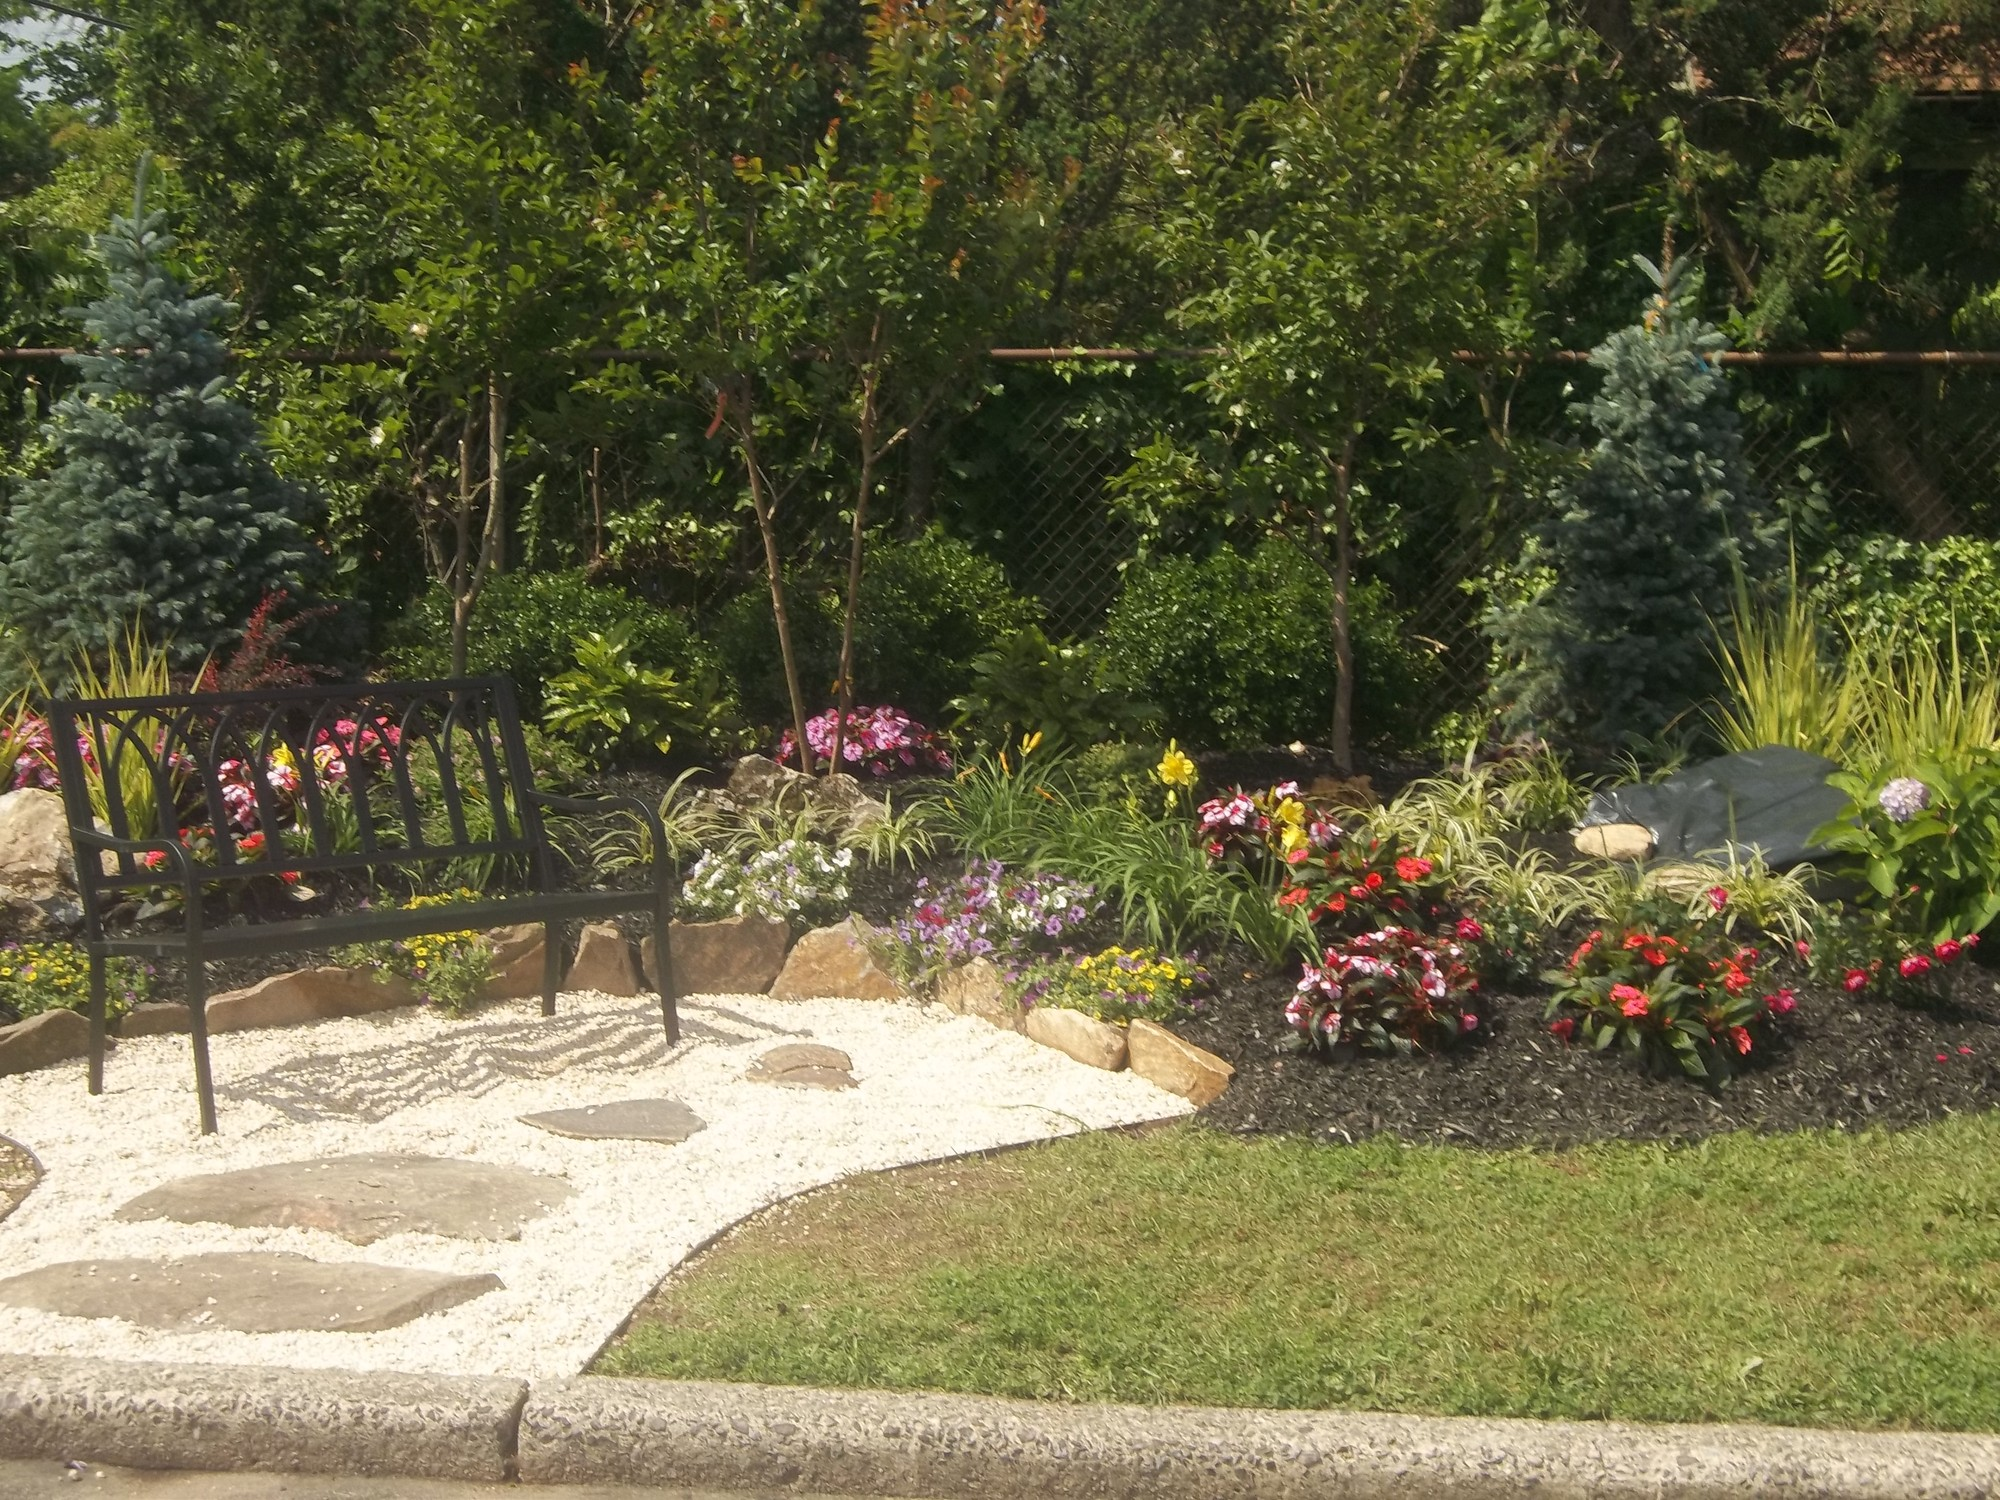 The Zachary Bernstein Garden, on the grounds at South Middle School, will be maintained by Sal Cimato.